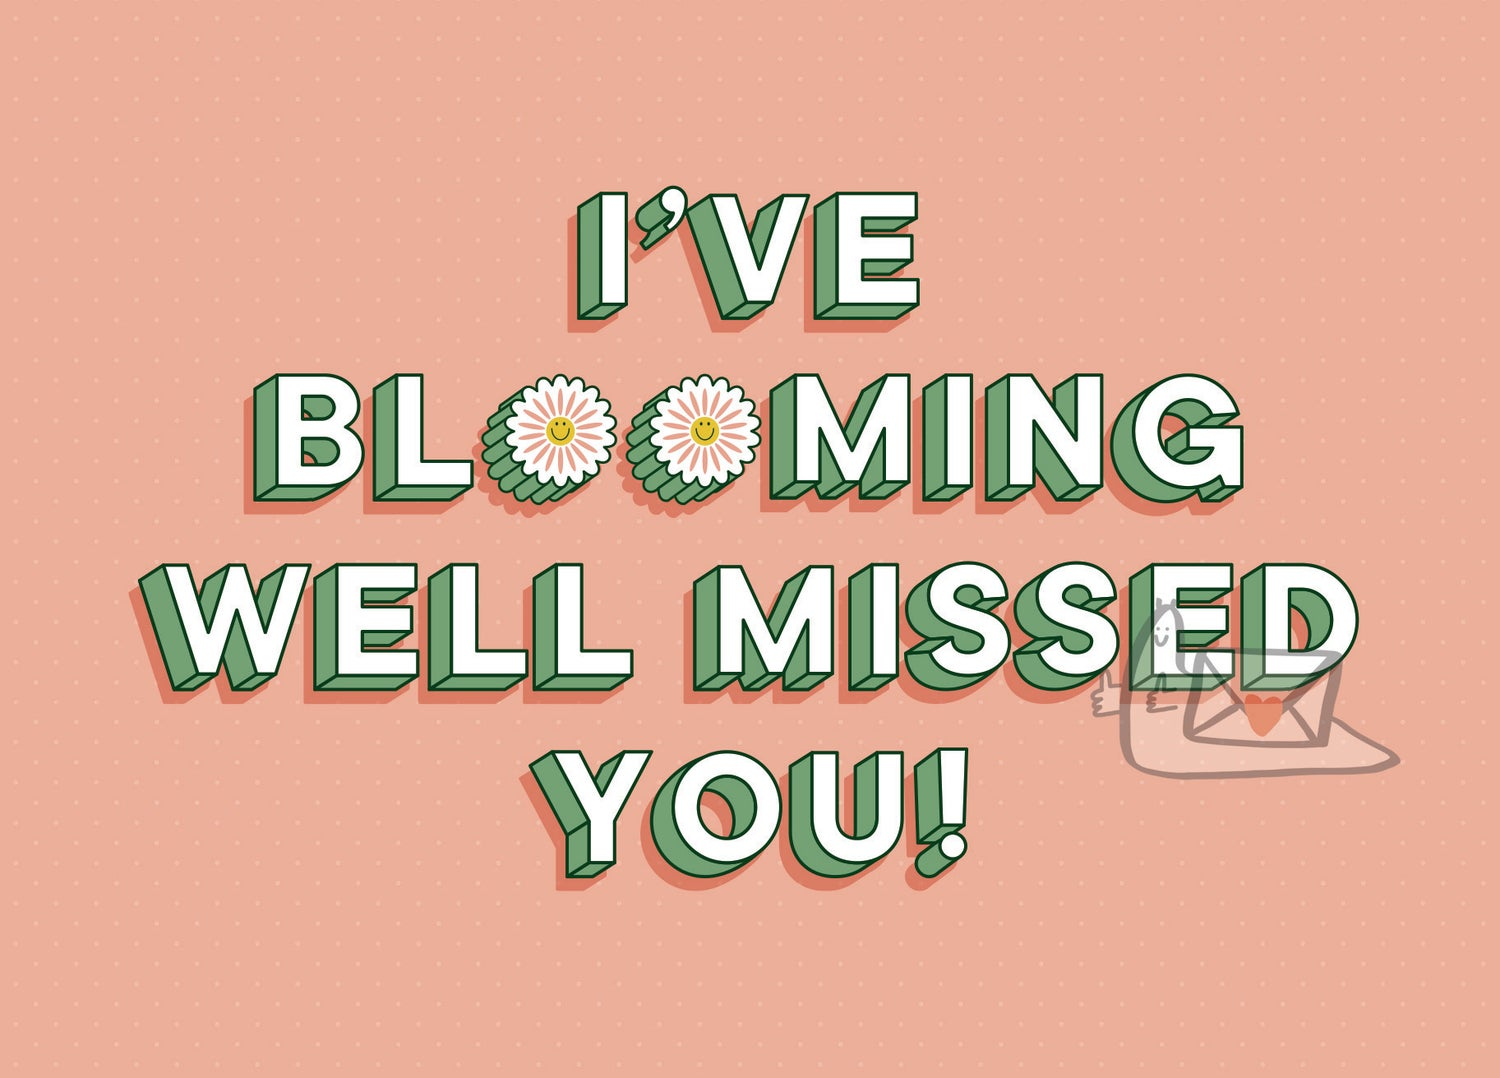 I've Blooming well missed you by Laura Vincent